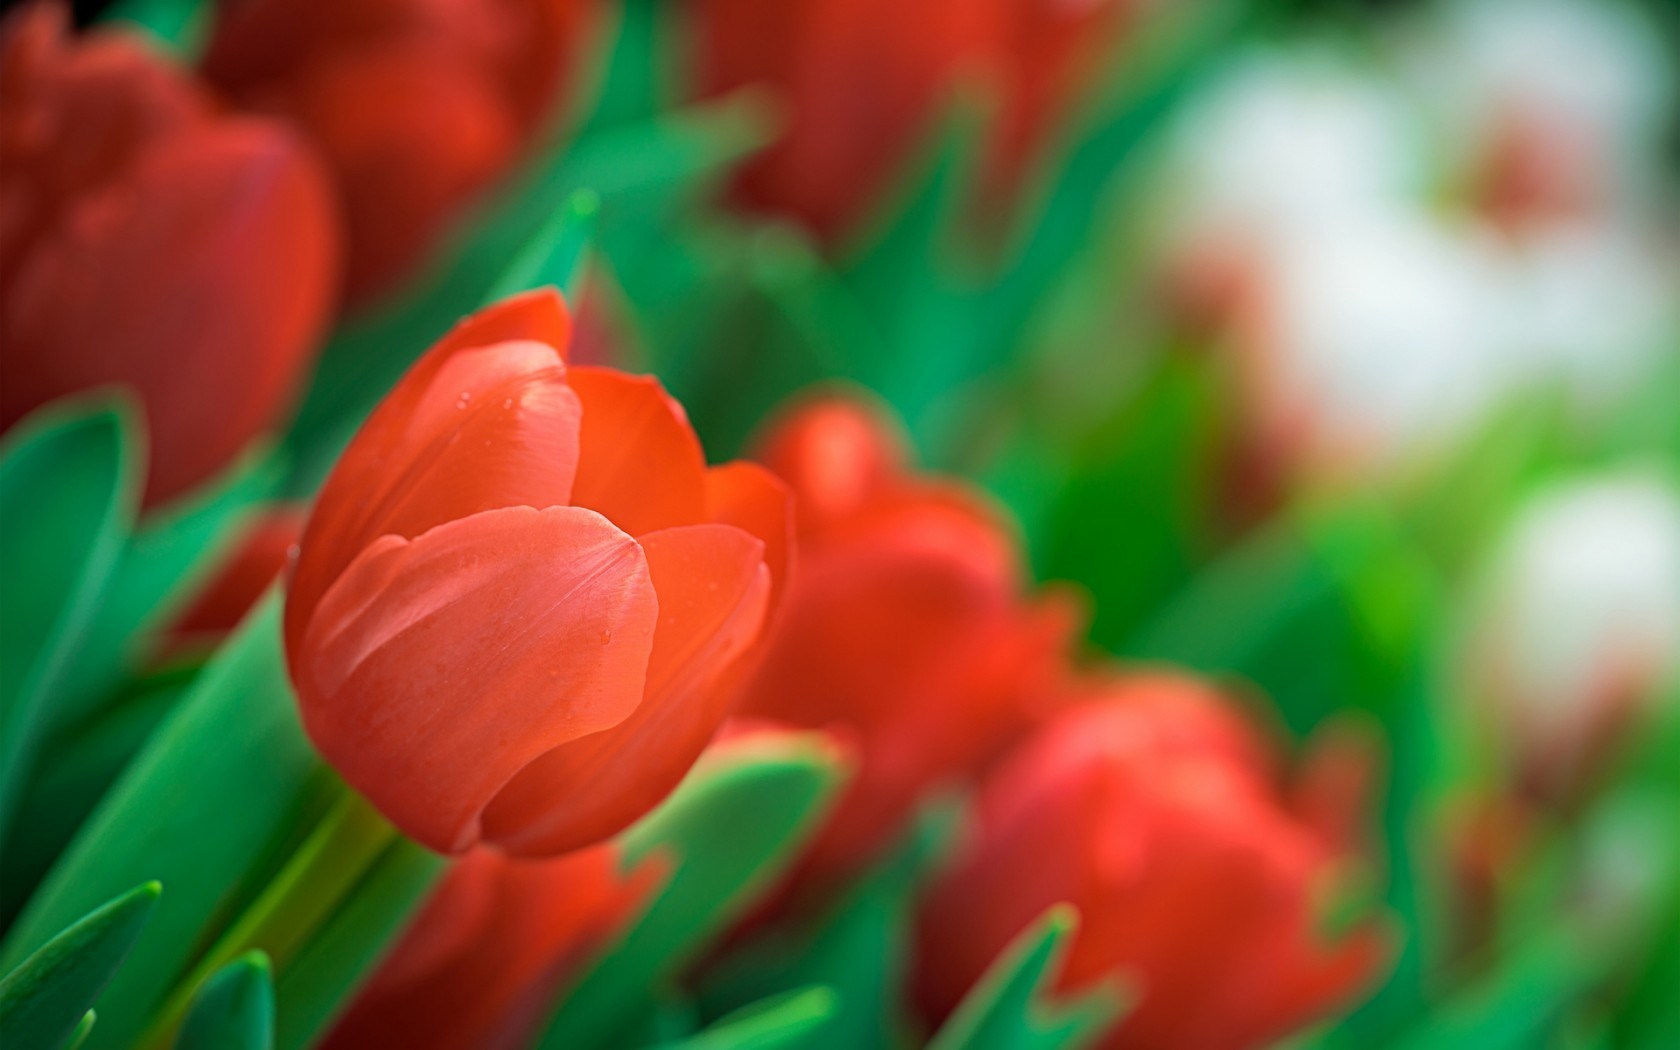 Gothic 3d Live Wallpaper Tulips Close Up Flowers Spring Hd Desktop Wallpapers 4k Hd